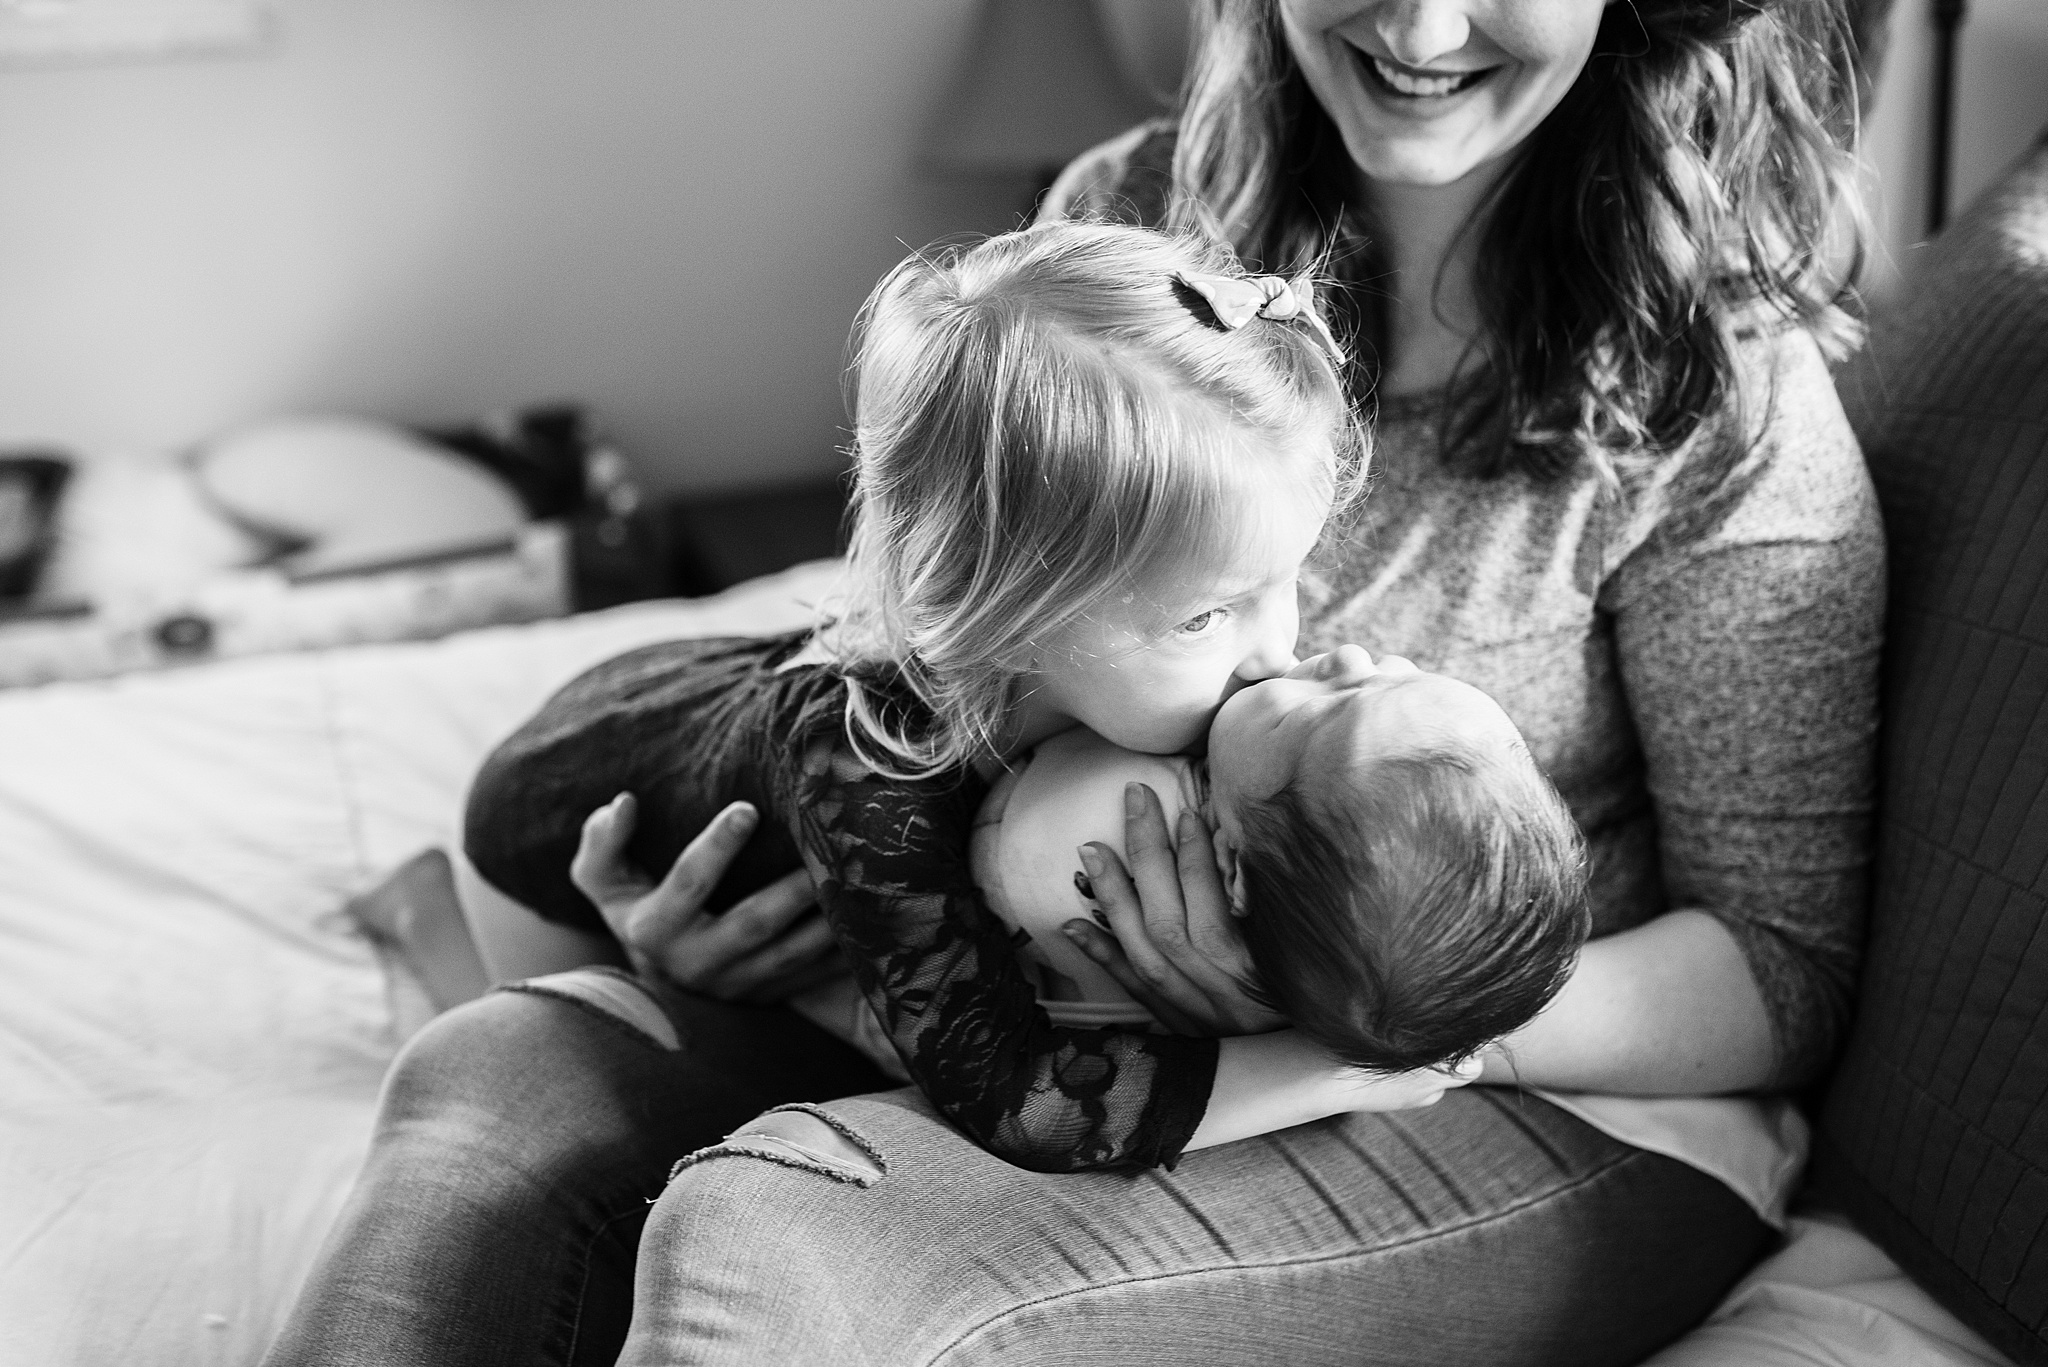 Natural-In-Home-Lifestyle-Newborn-Family-Photographer-Pittsburgh-Rachel-Rossetti-Photography_0047.jpg